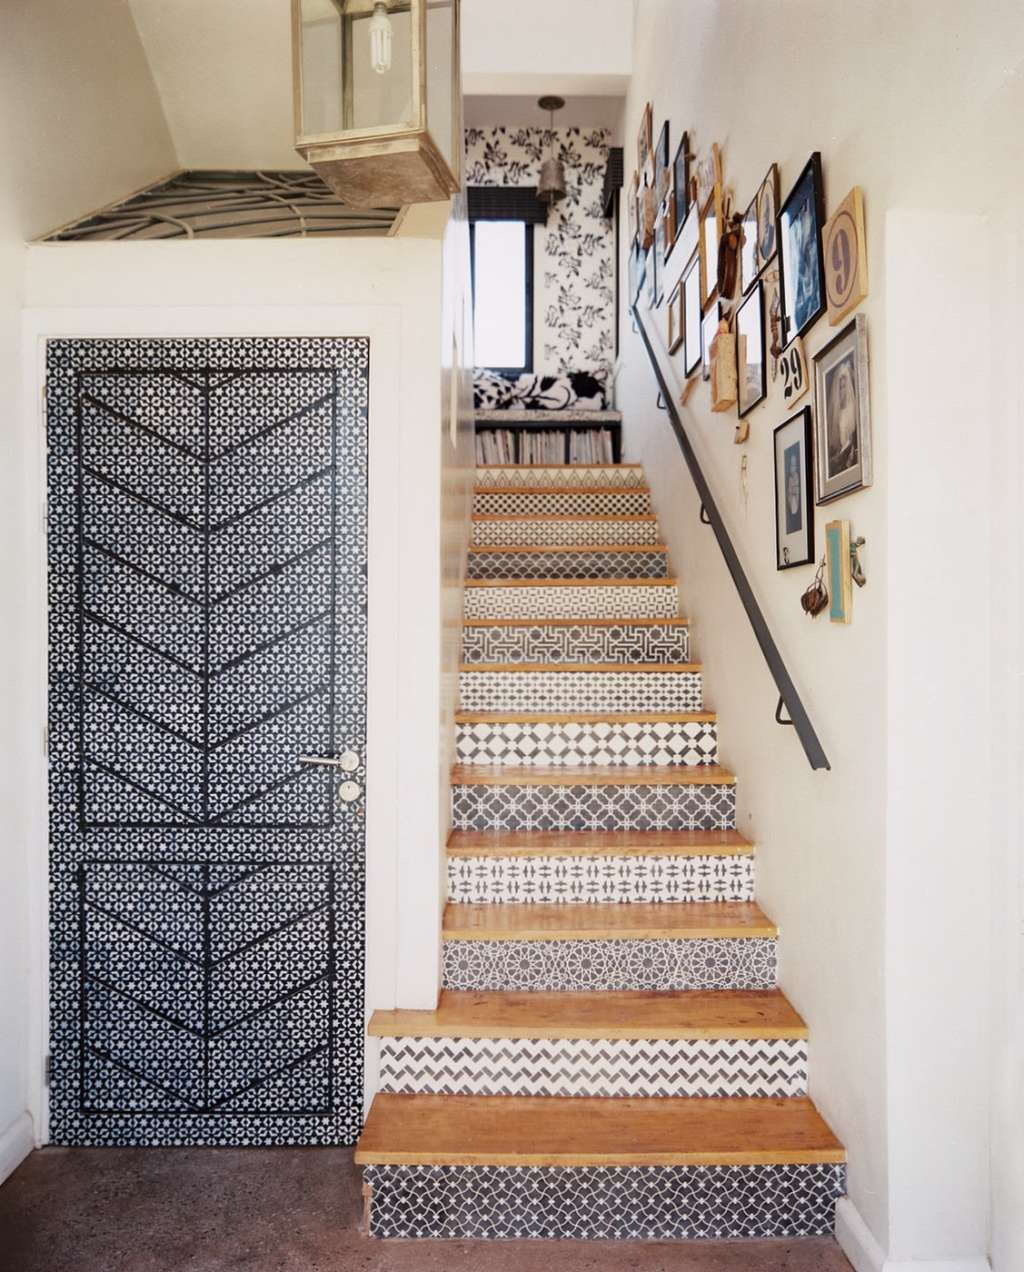 10 Unexpected Places to Sneak in a Patterned Wallpaper